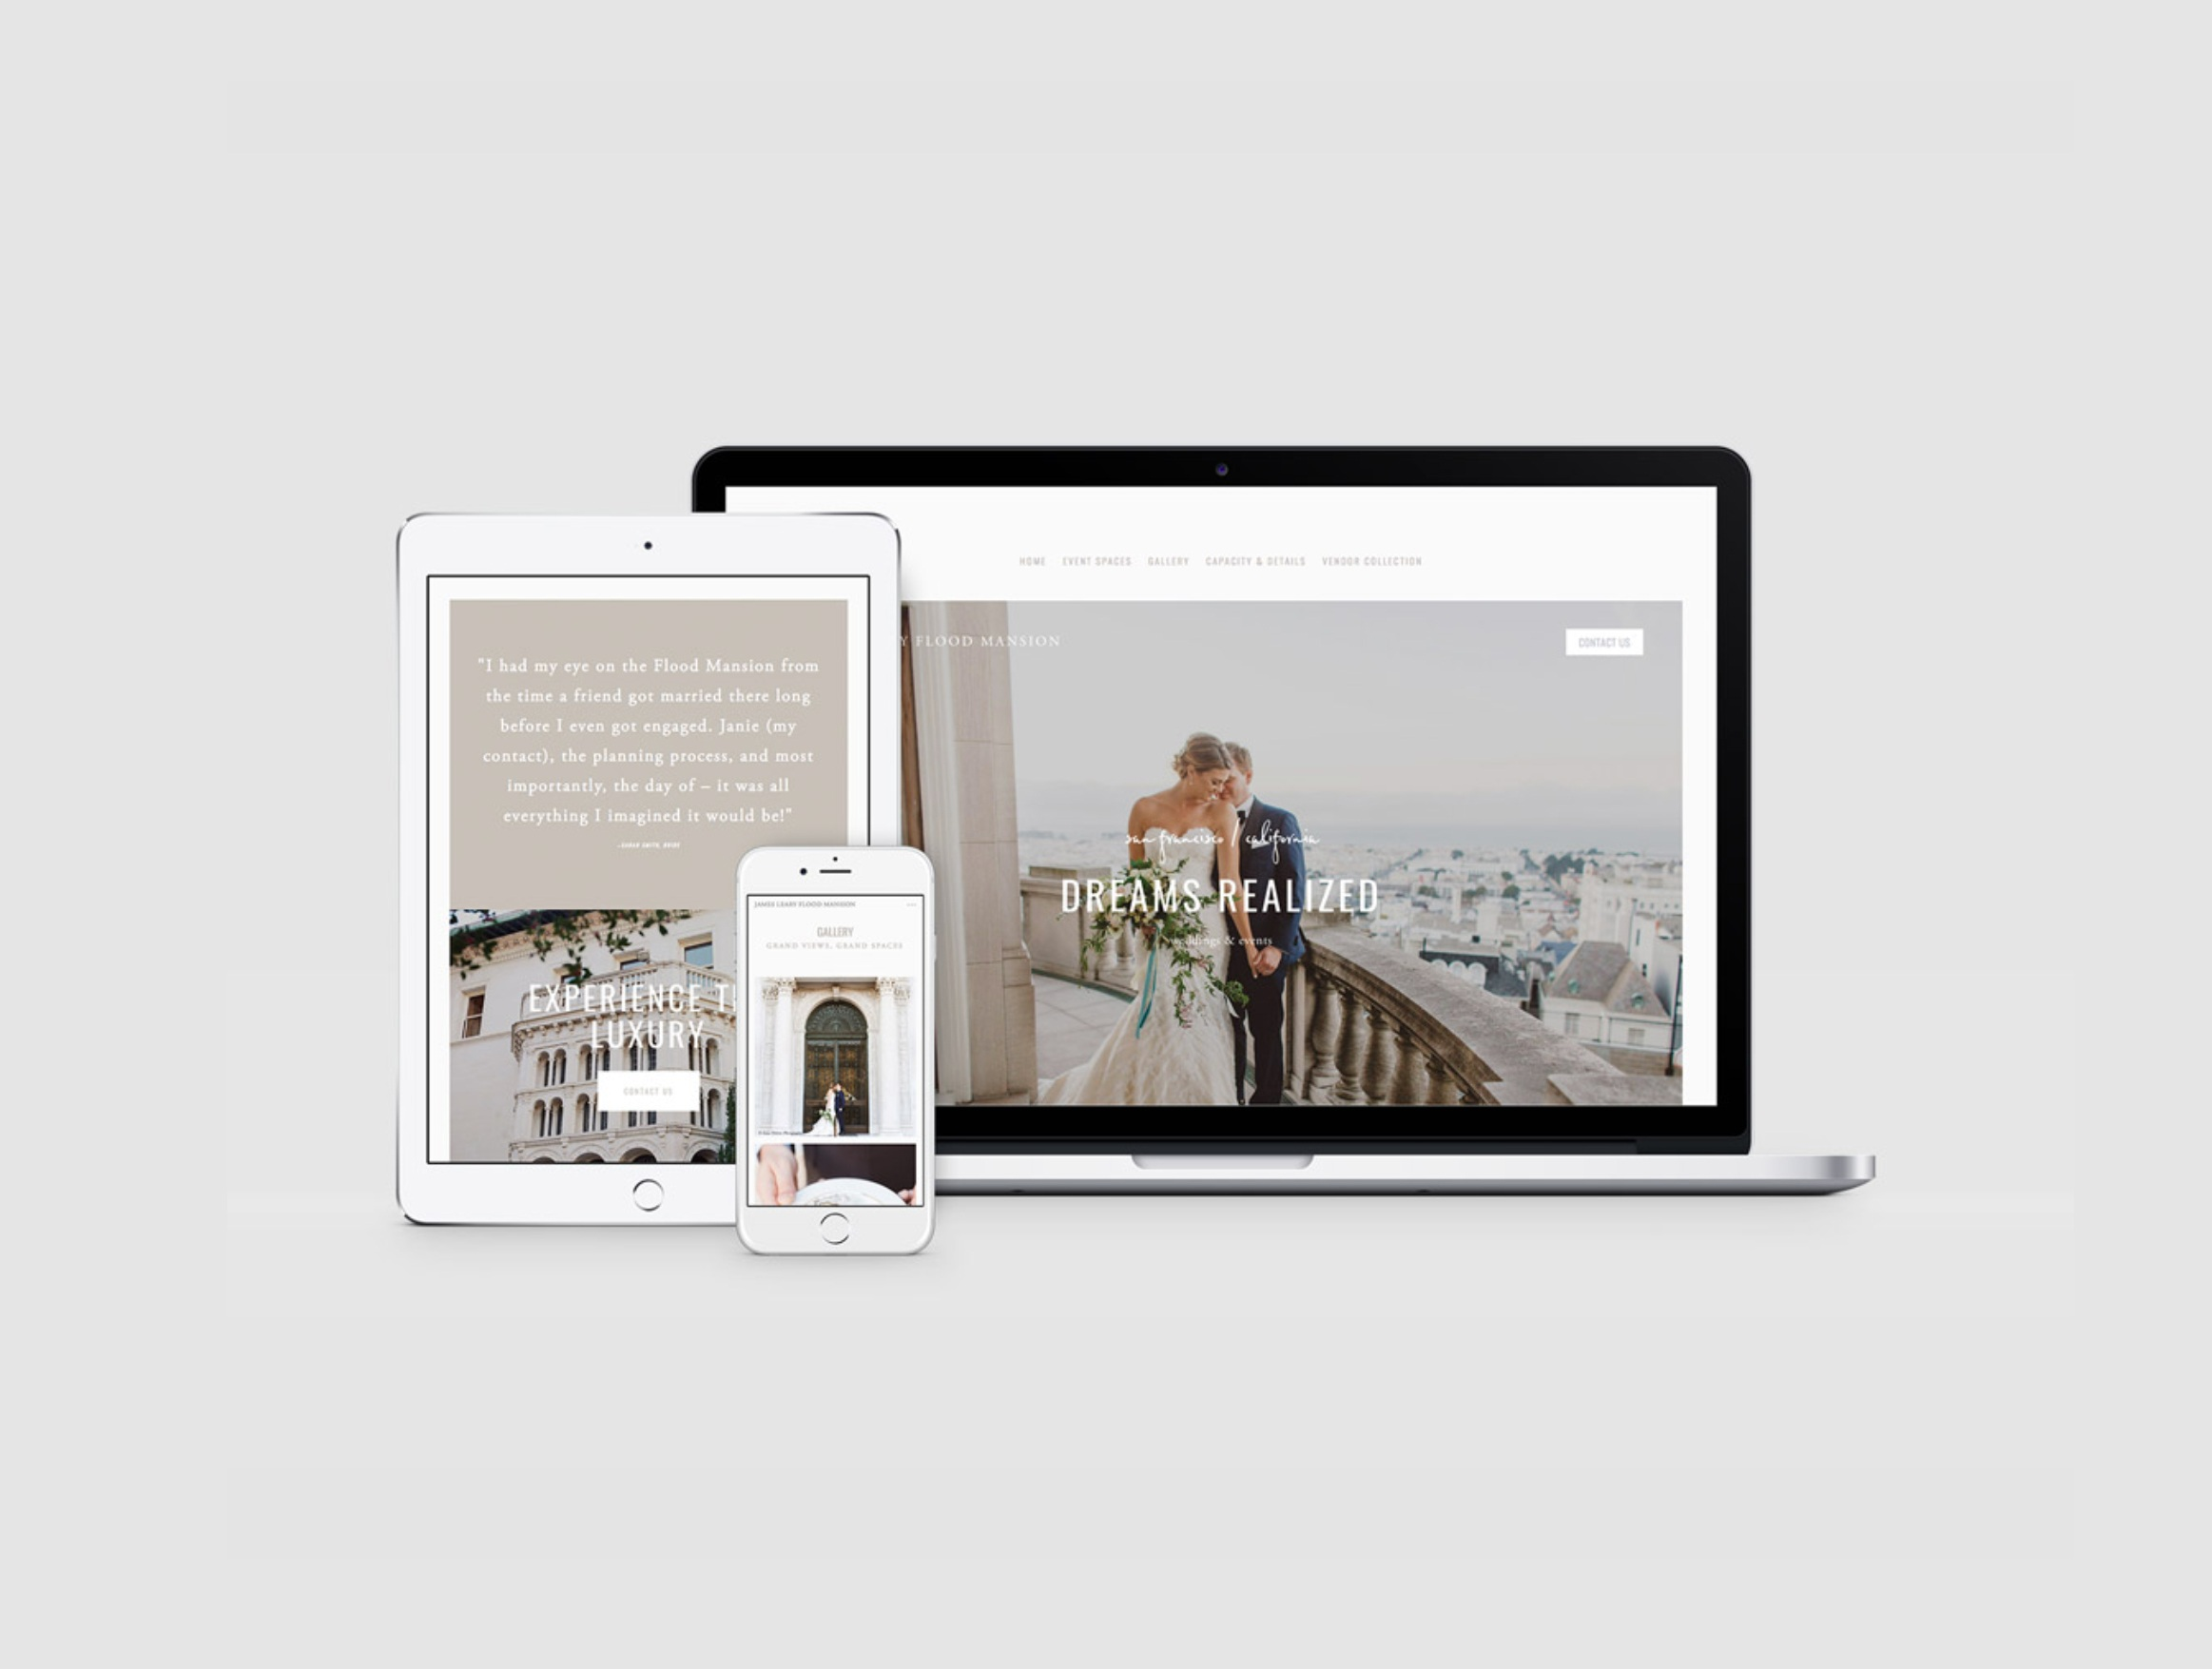 Website: James Leary Flood events. Built with SquareSpace.